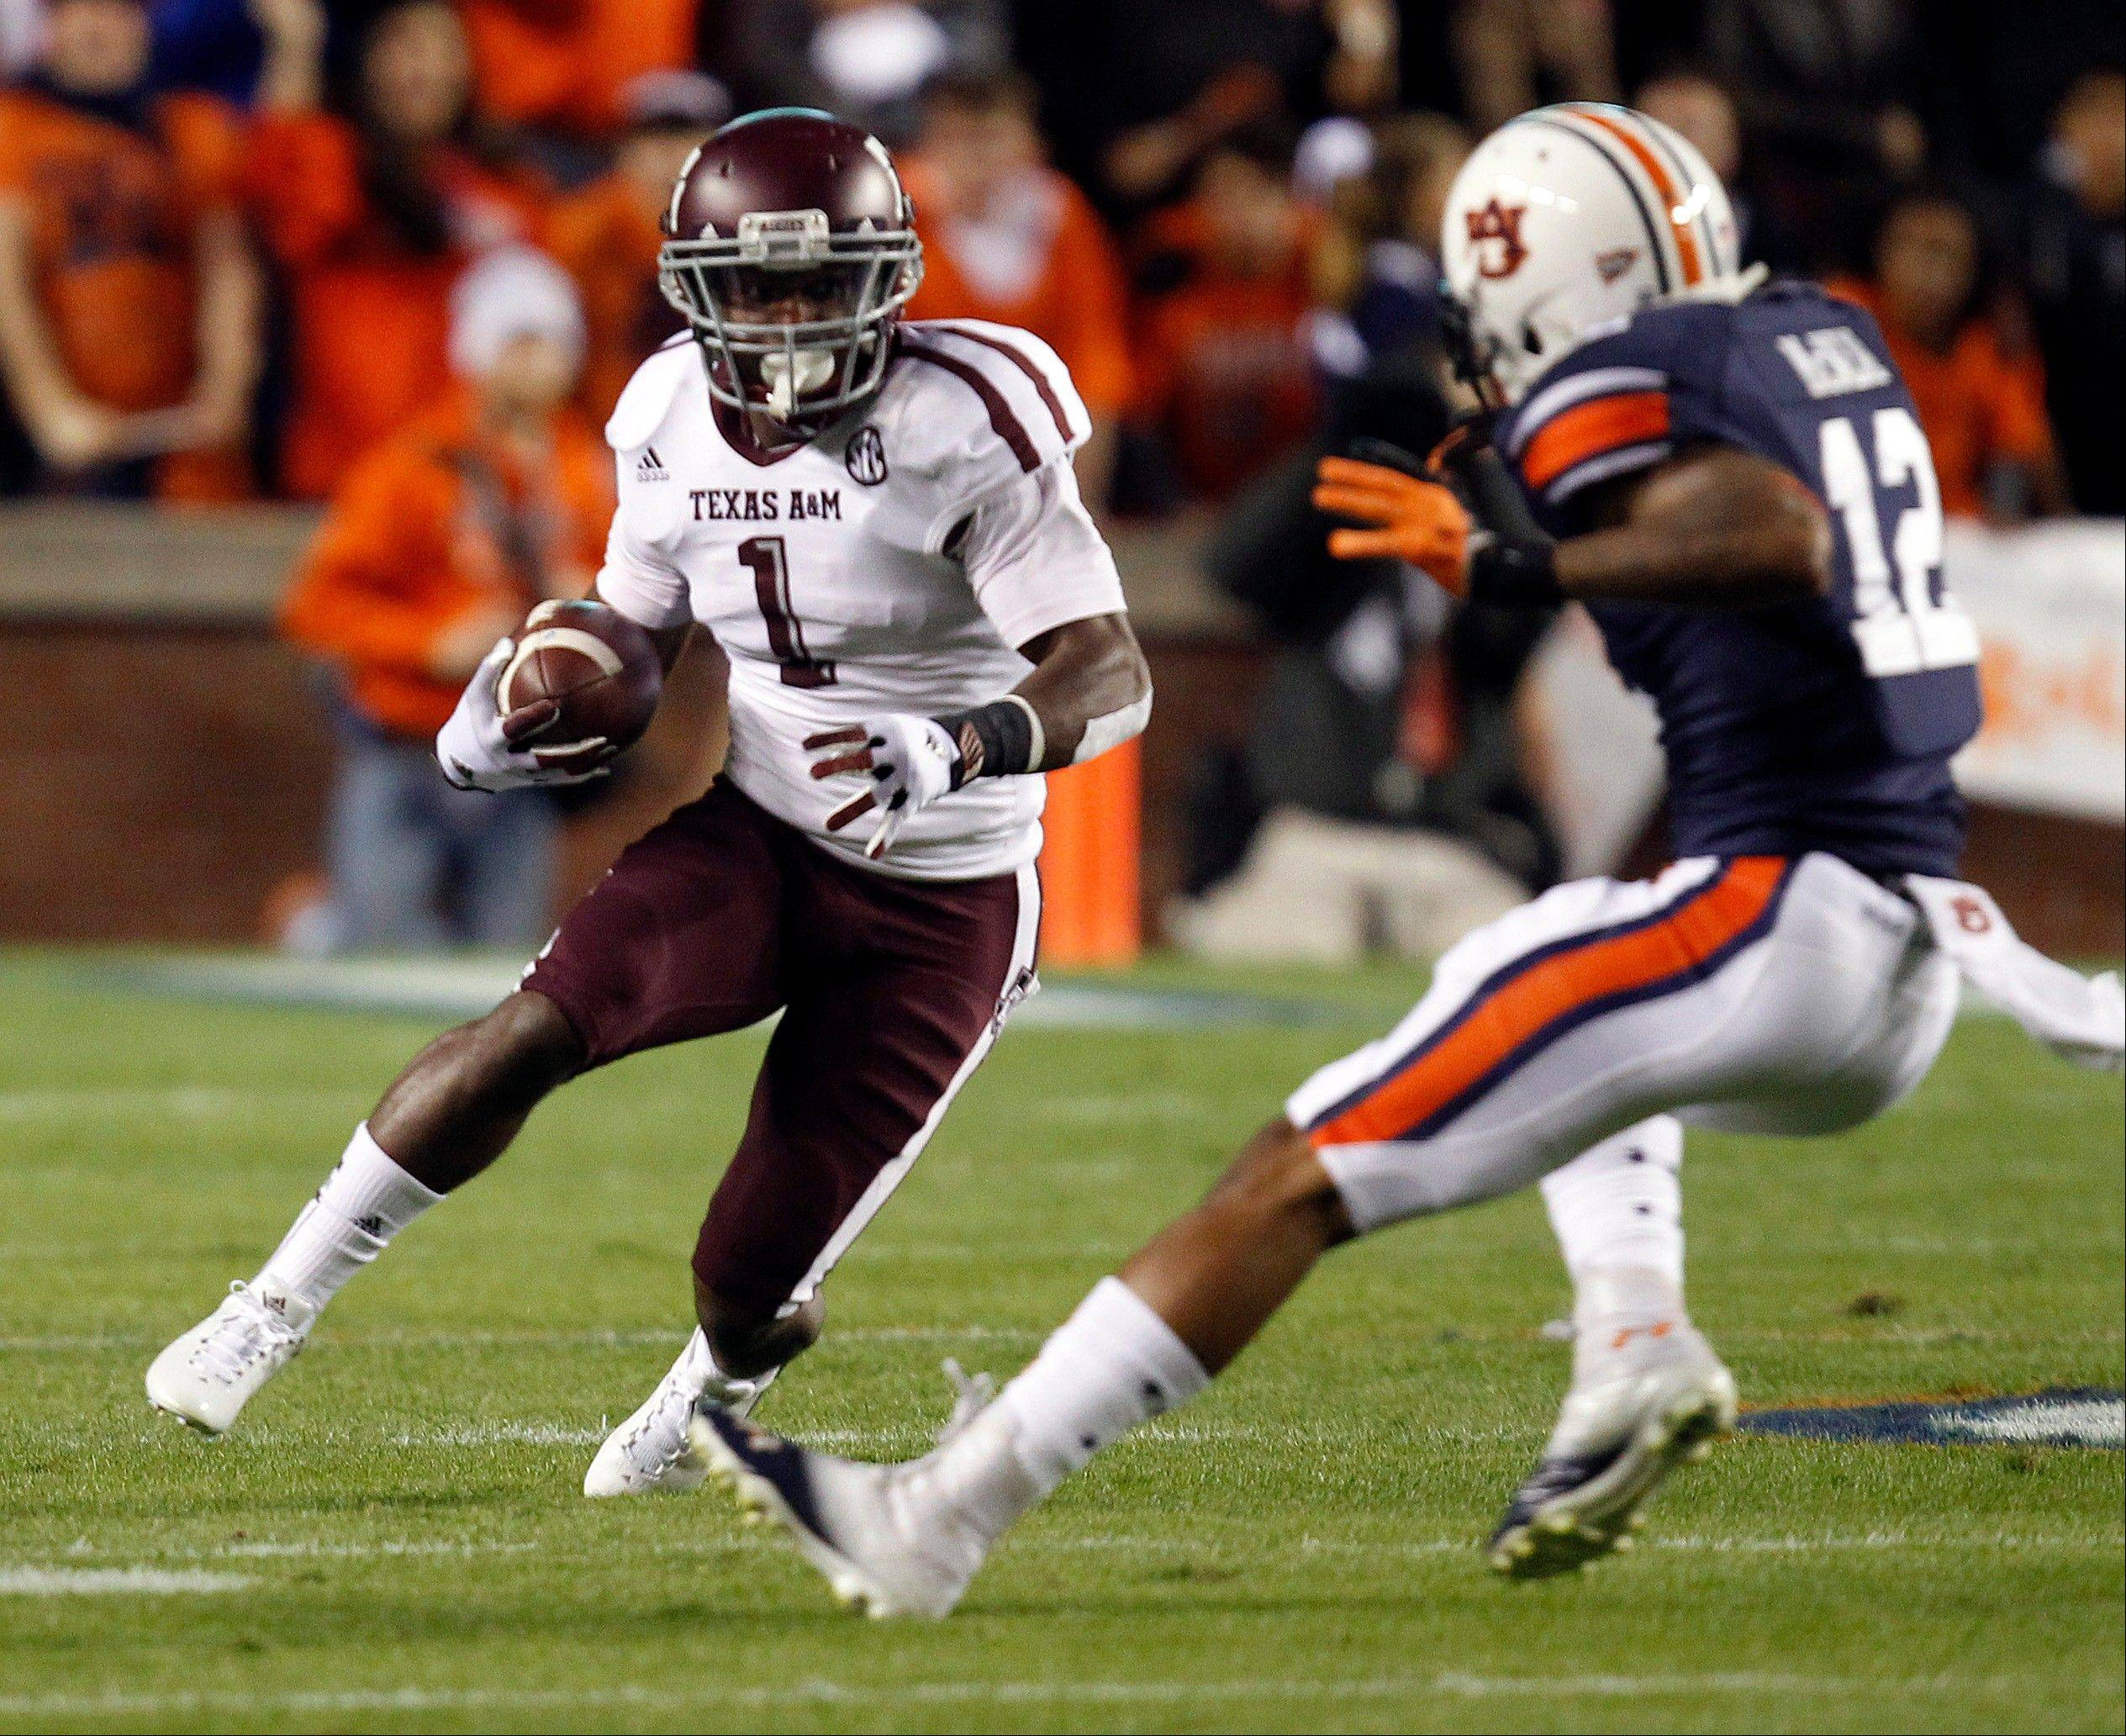 Texas A&M running back Ben Malena tries to get around Auburn defensive back Demetruce McNeal Saturday during the first half in Auburn, Ala. Texas A&M defeated Auburn 63-21.